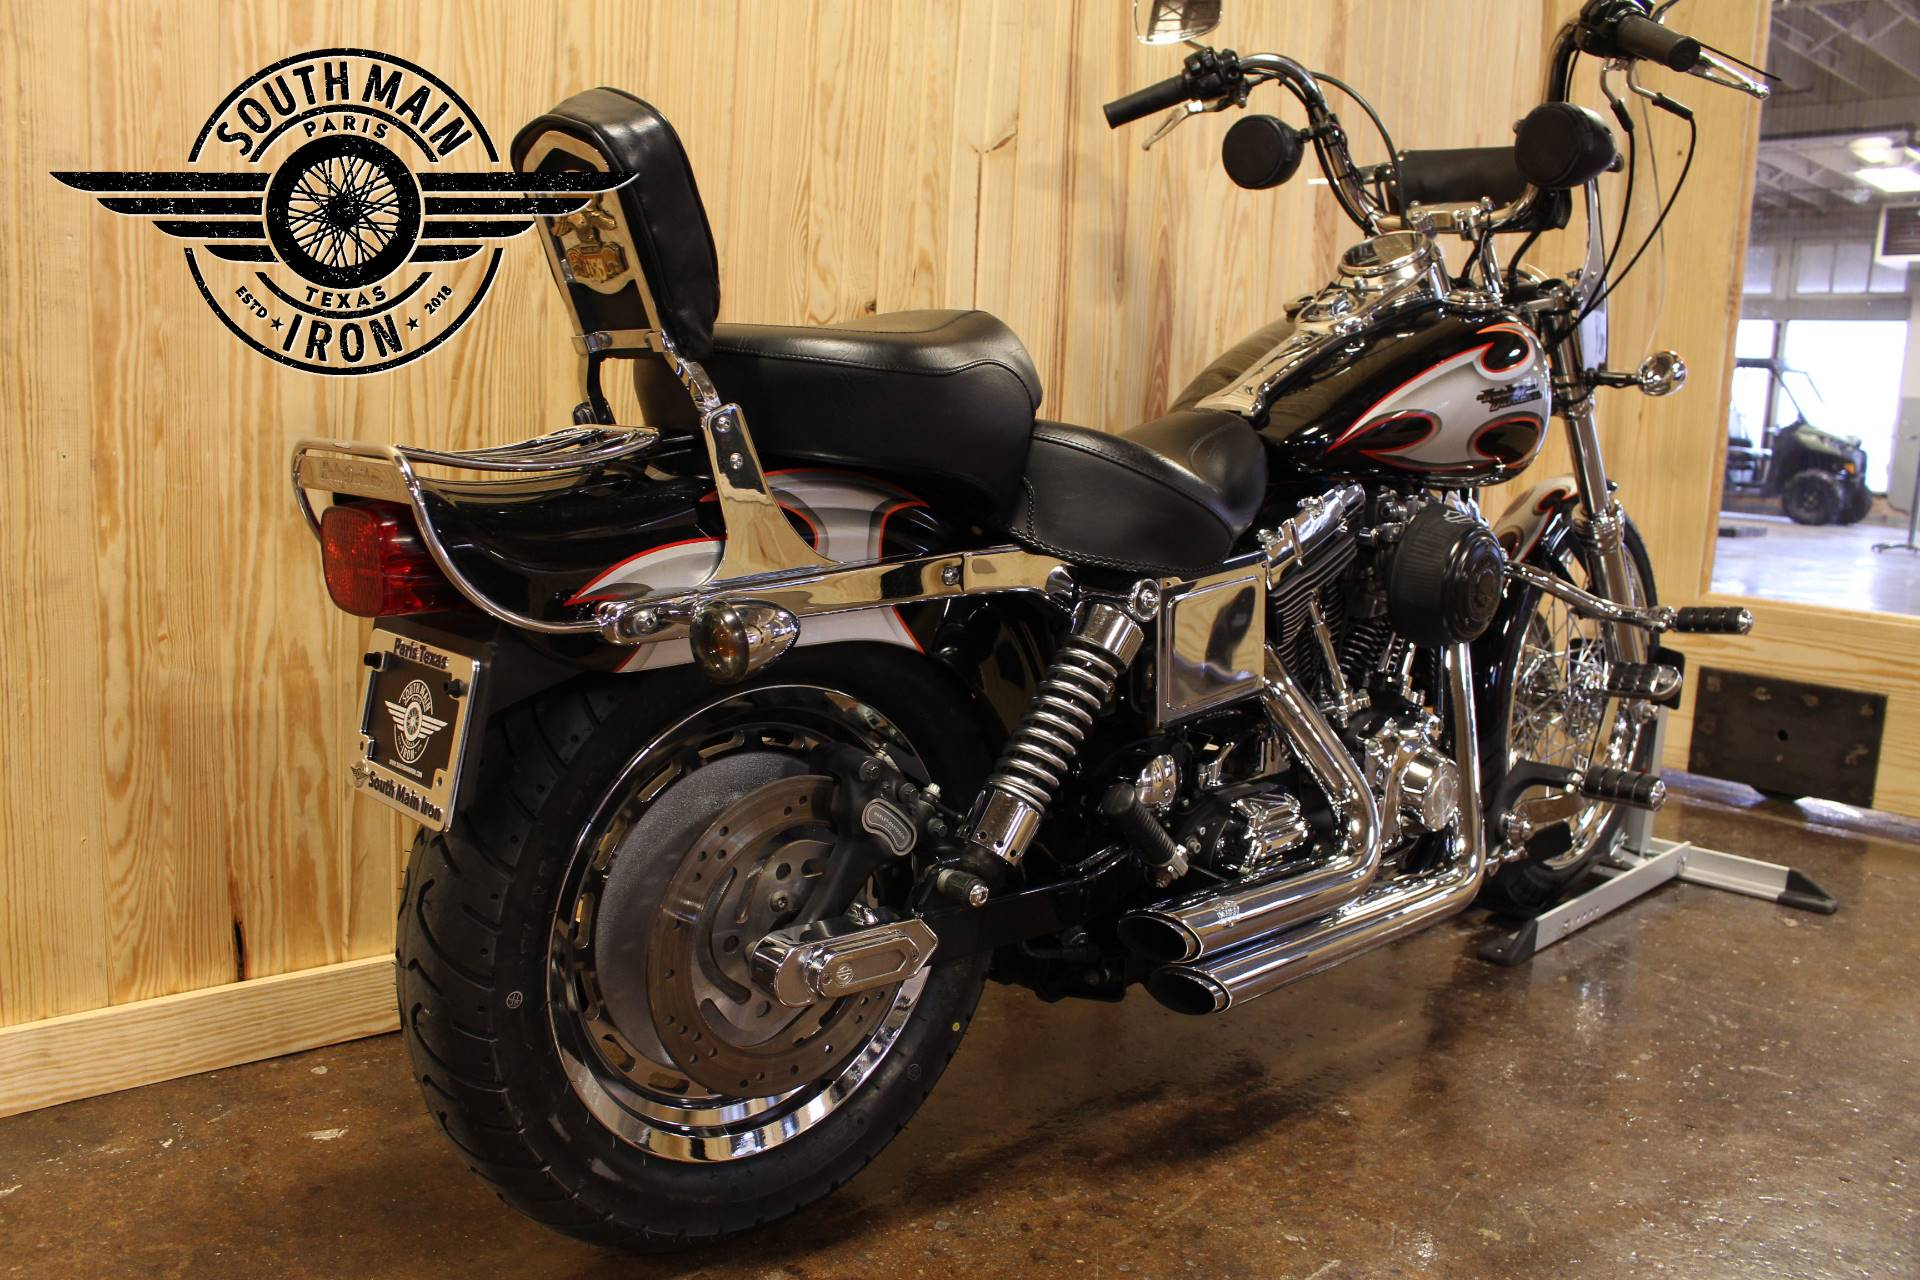 2002 Harley-Davidson FXDWG Dyna Wide Glide® in Paris, Texas - Photo 5